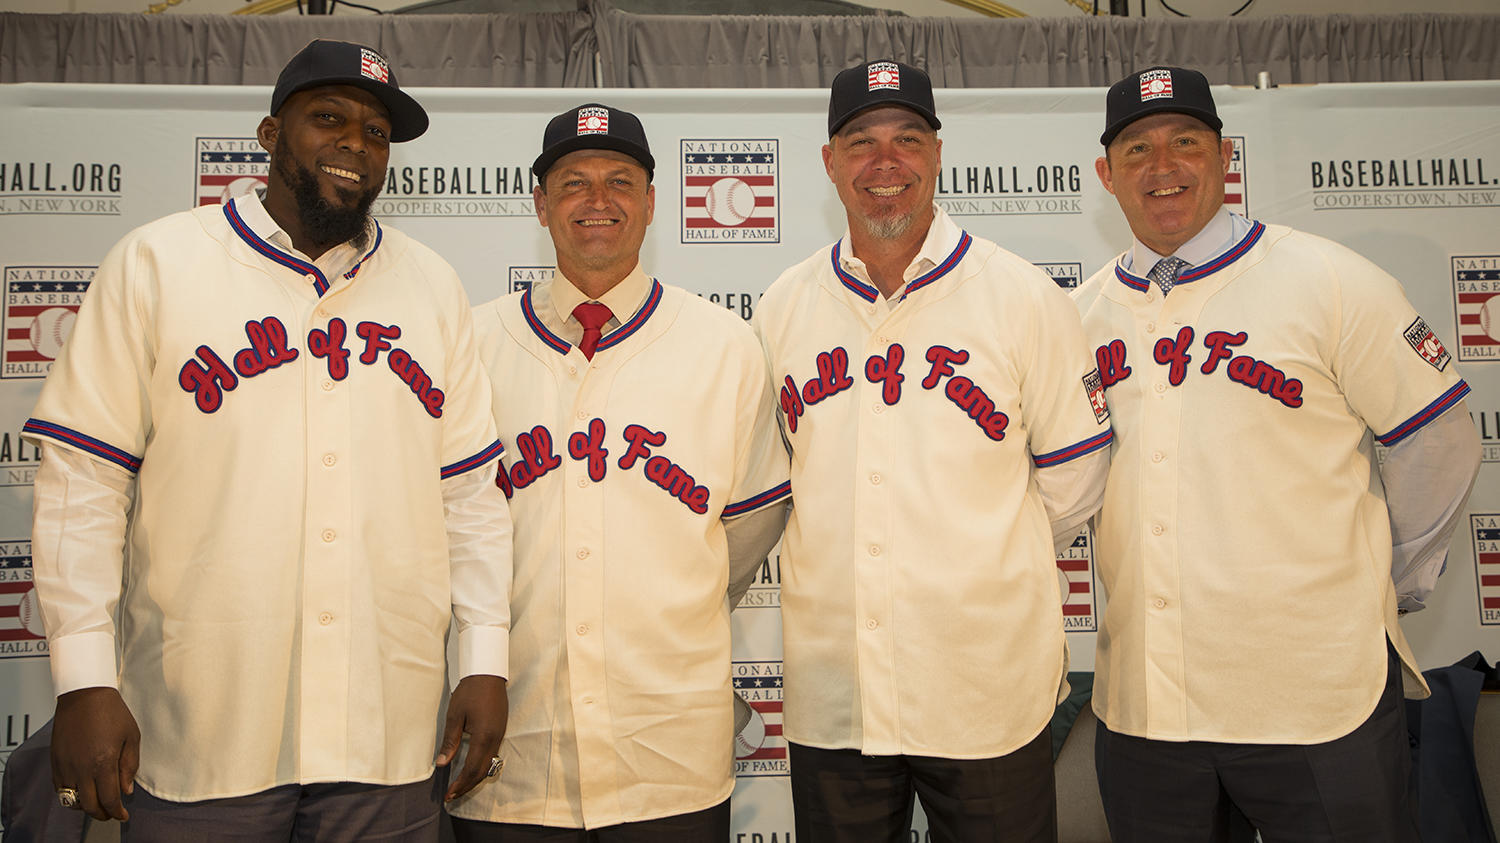 Vladimir Guerrero, Trevor Hoffman, Chipper Jones and Jim Thome pose for a photo after they meet the media for the first time as Hall of Famers. (Milo Stewart Jr./National Baseball Hall of Fame and Museum)